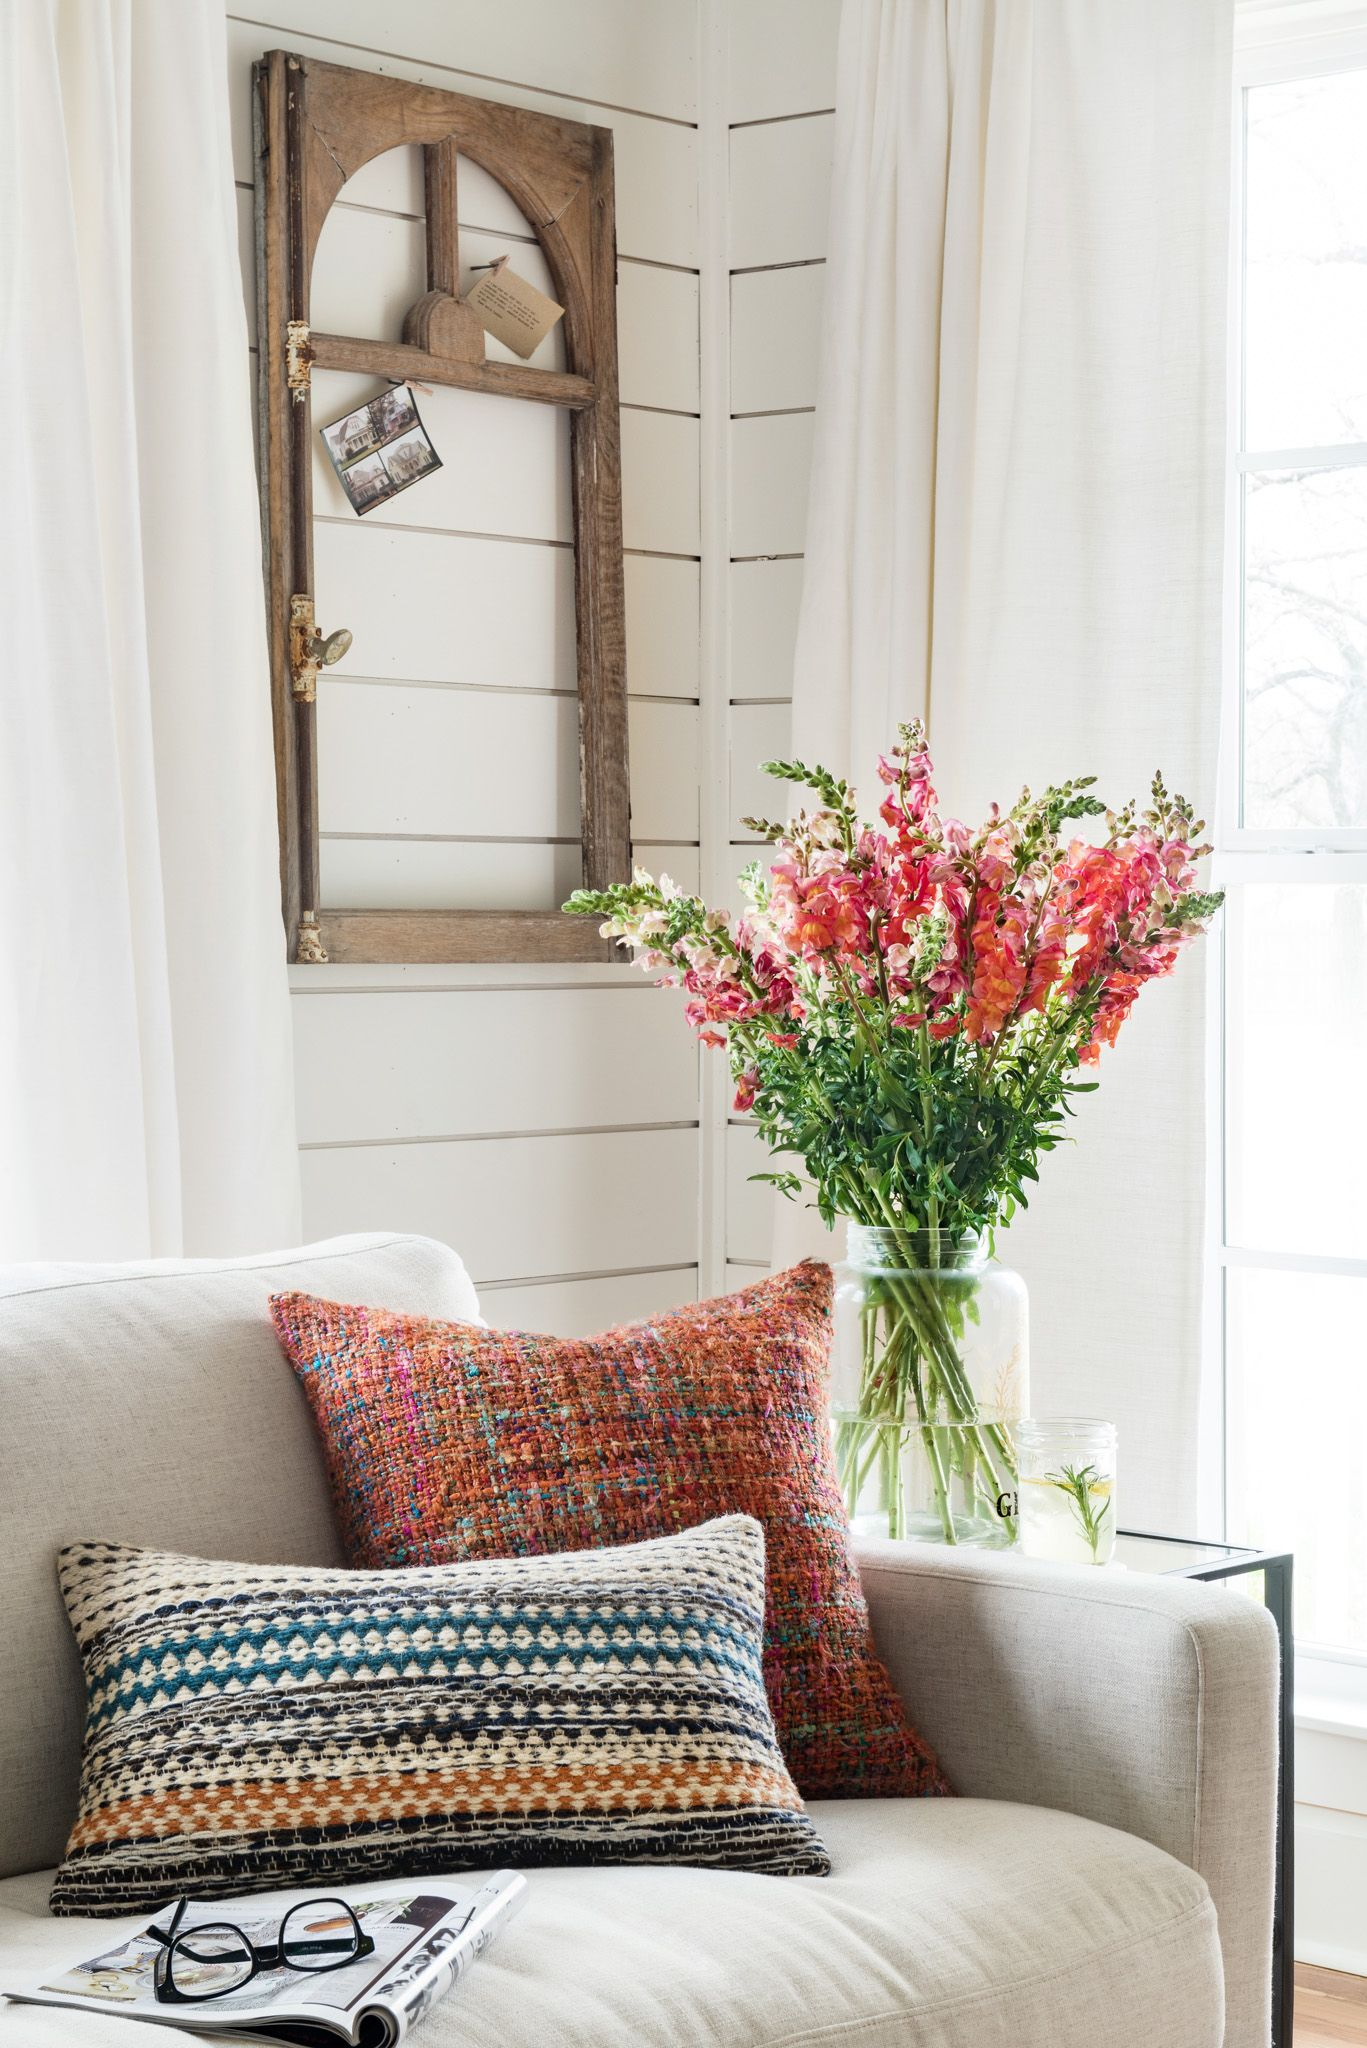 It s amazing what a couple of pillows can do for a space Throw them